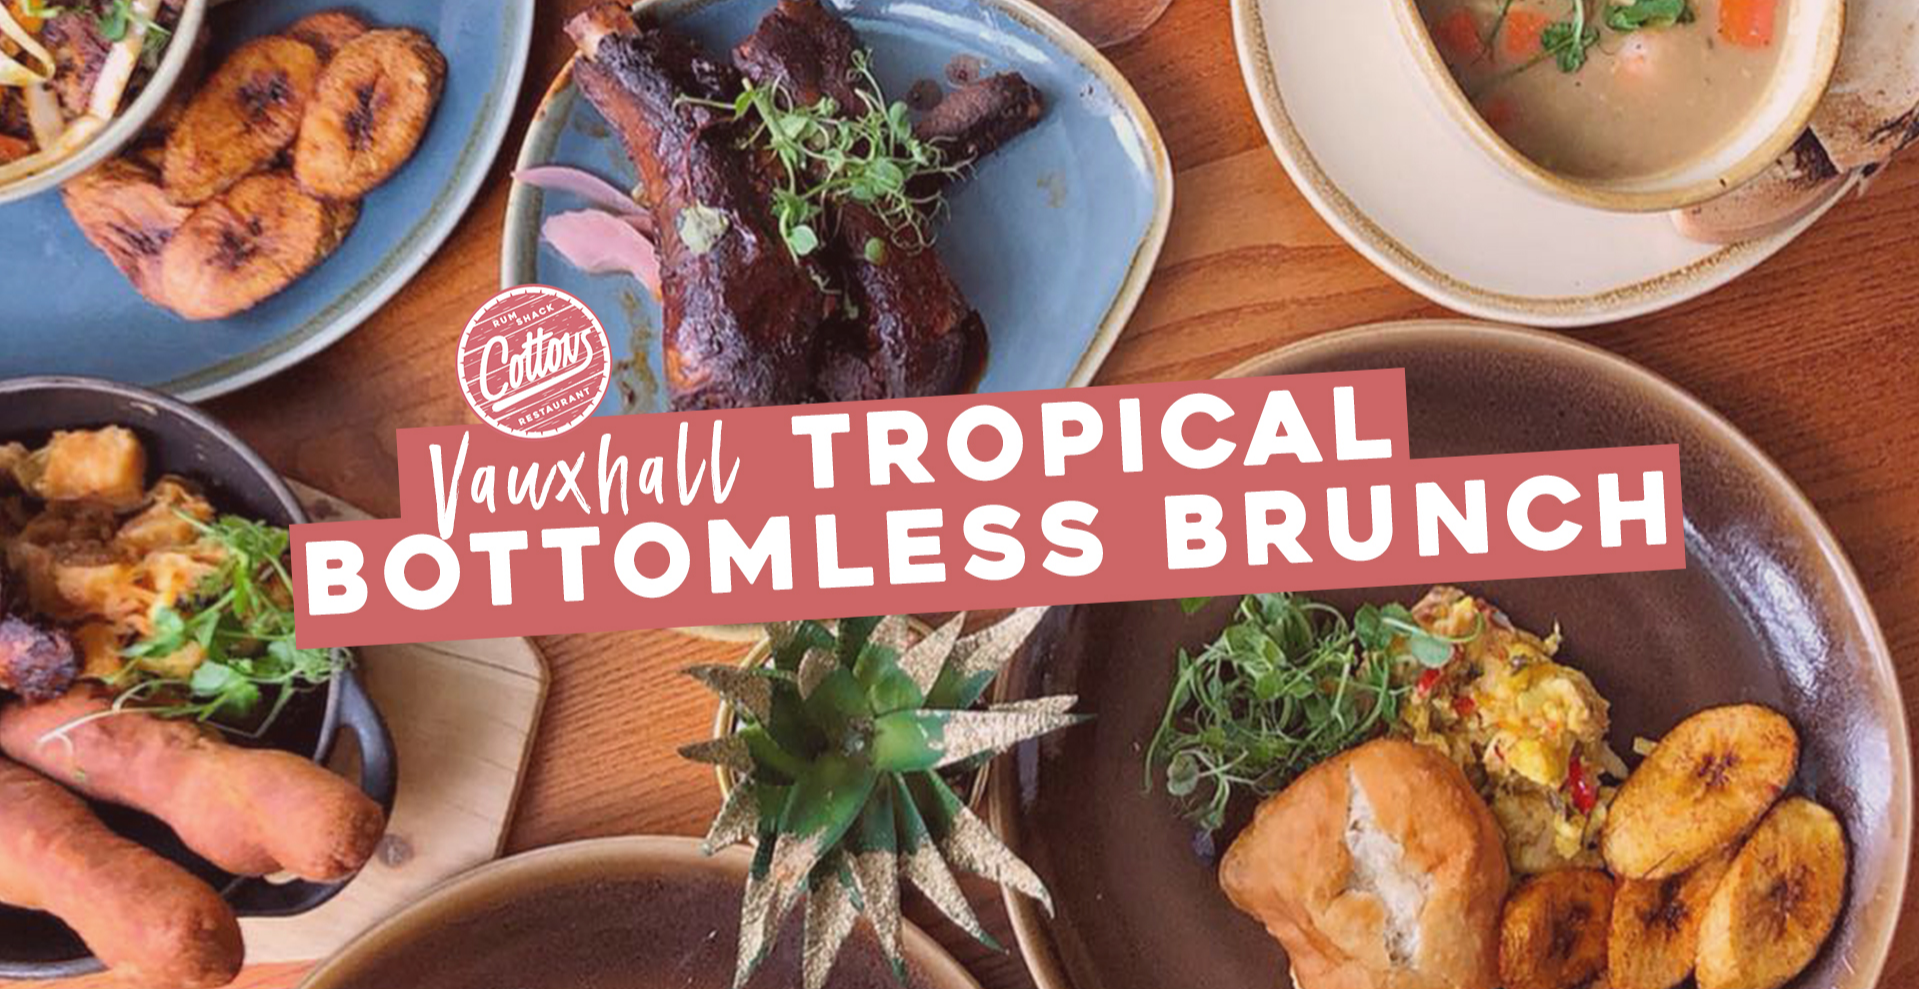 Cottons Tropical Bottomless Brunch - Vauxhall